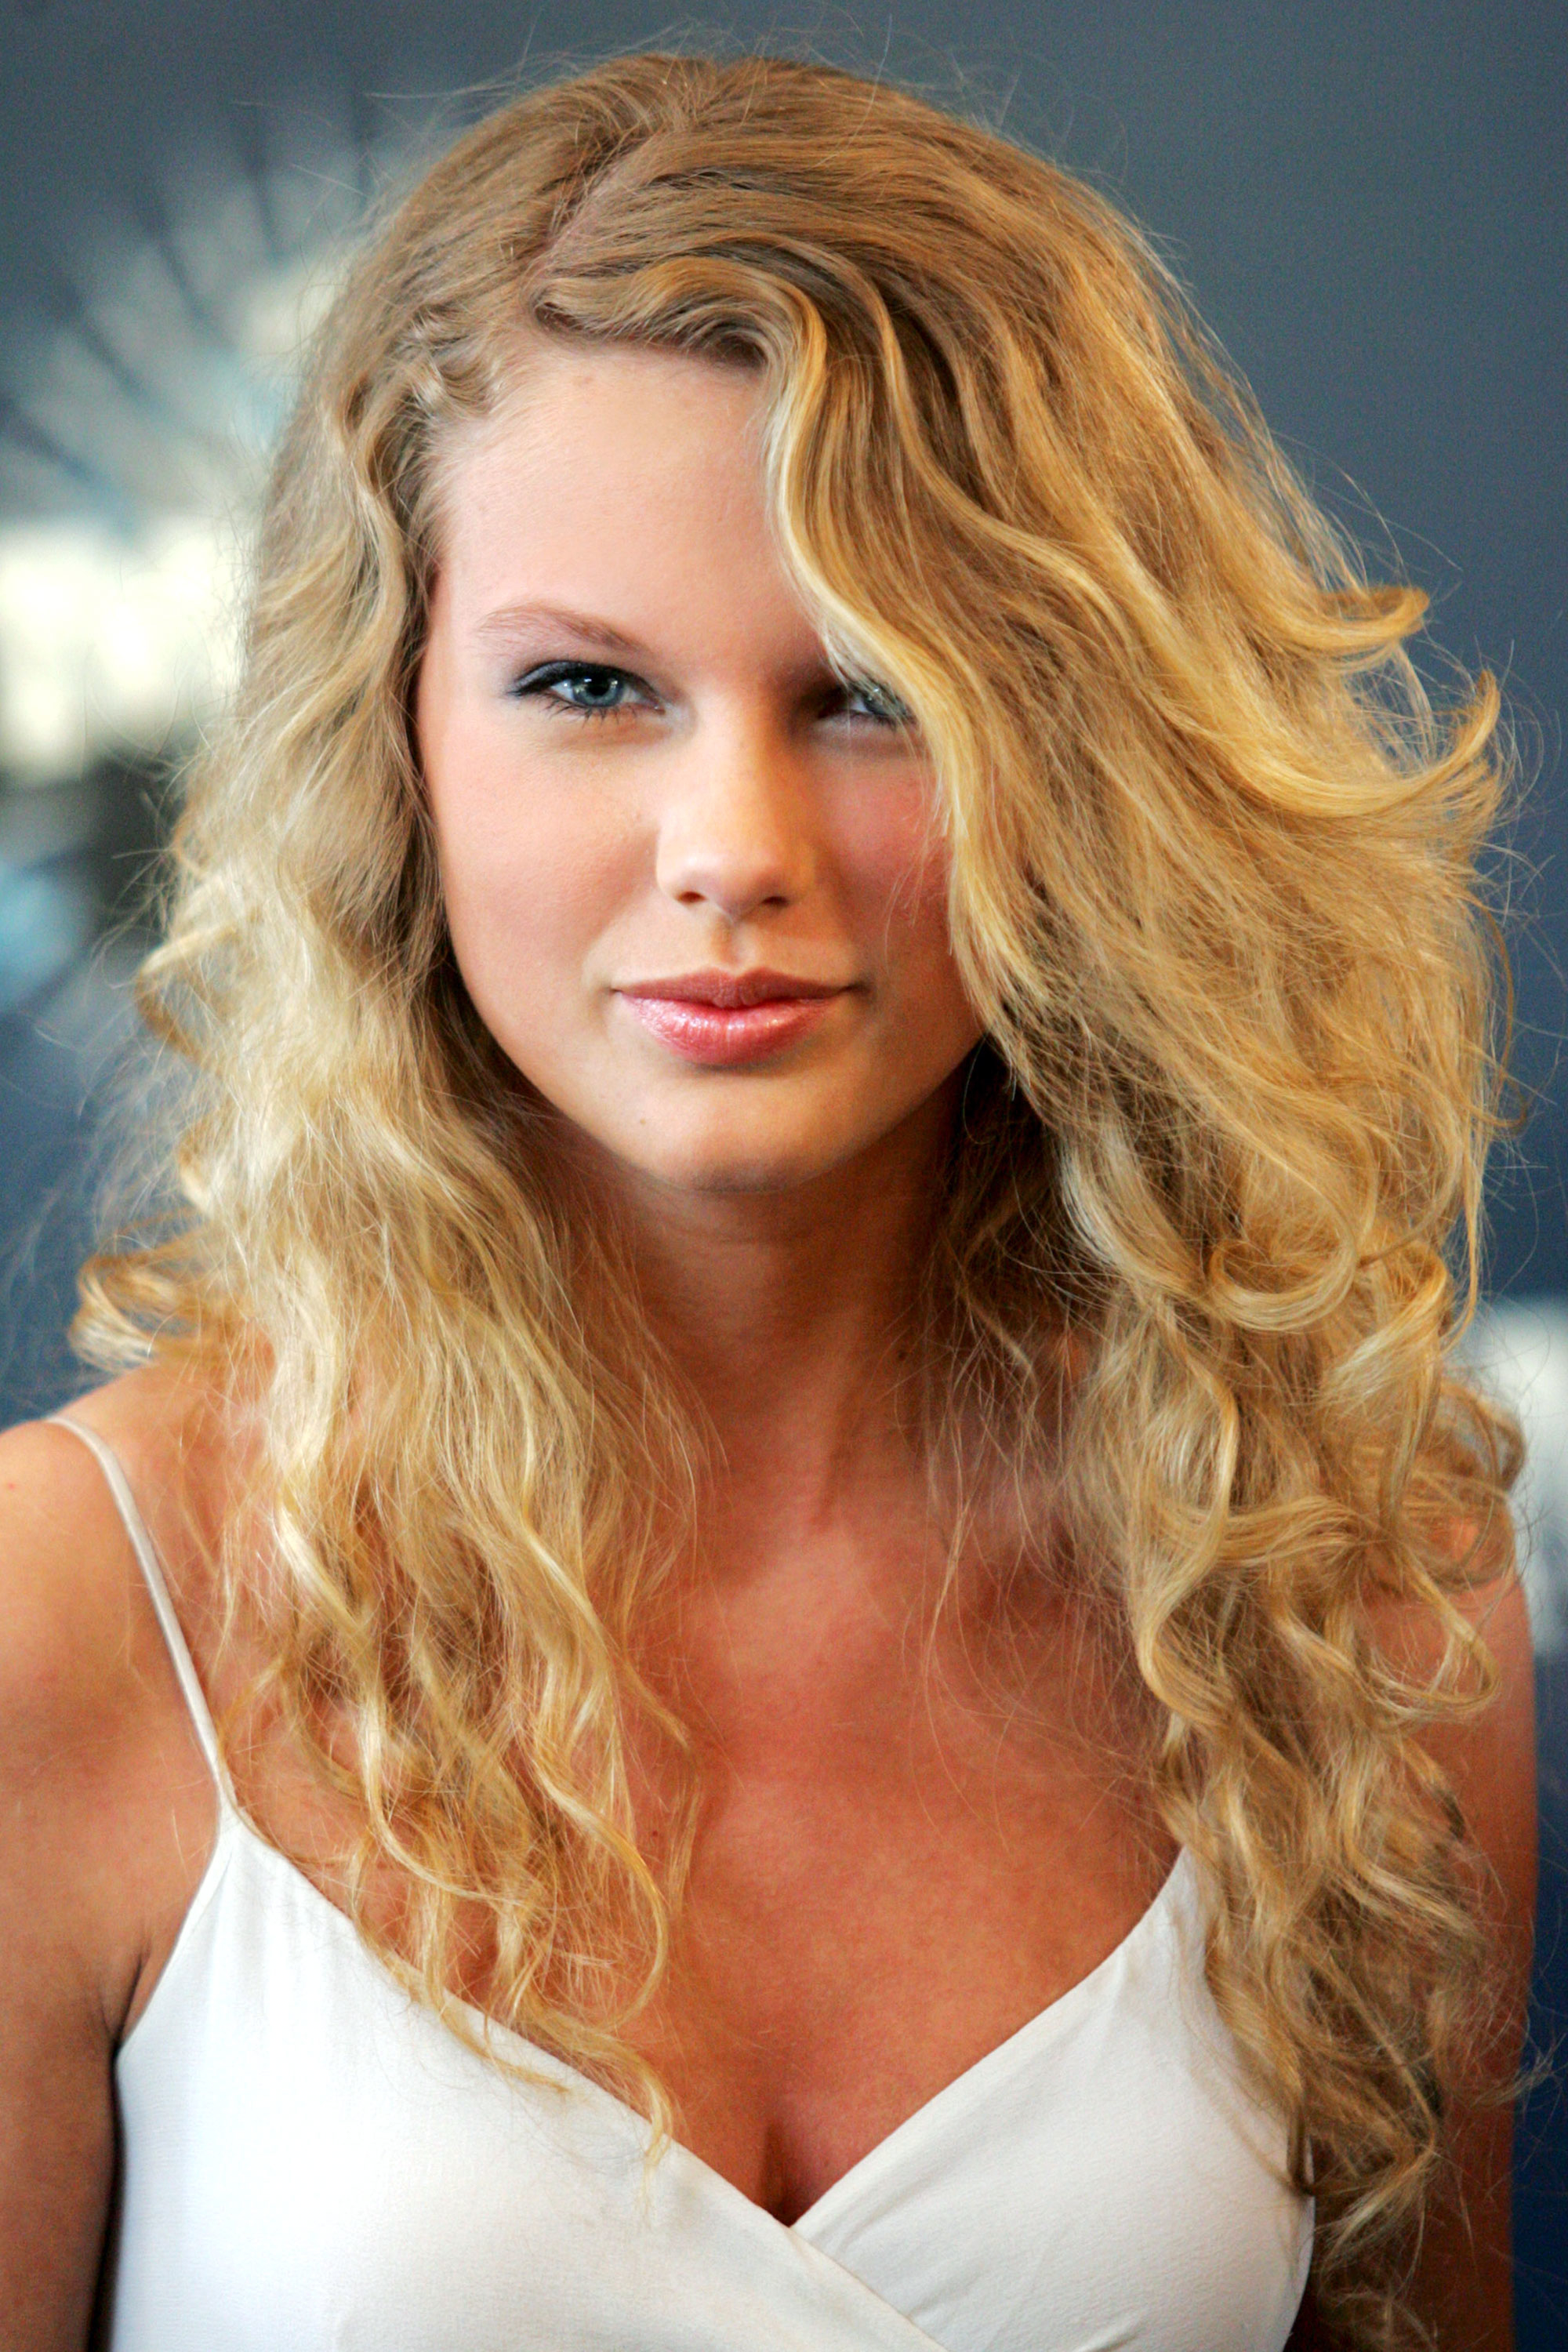 straight hairstyles curly hair 9 - Straight Hairstyles 2018